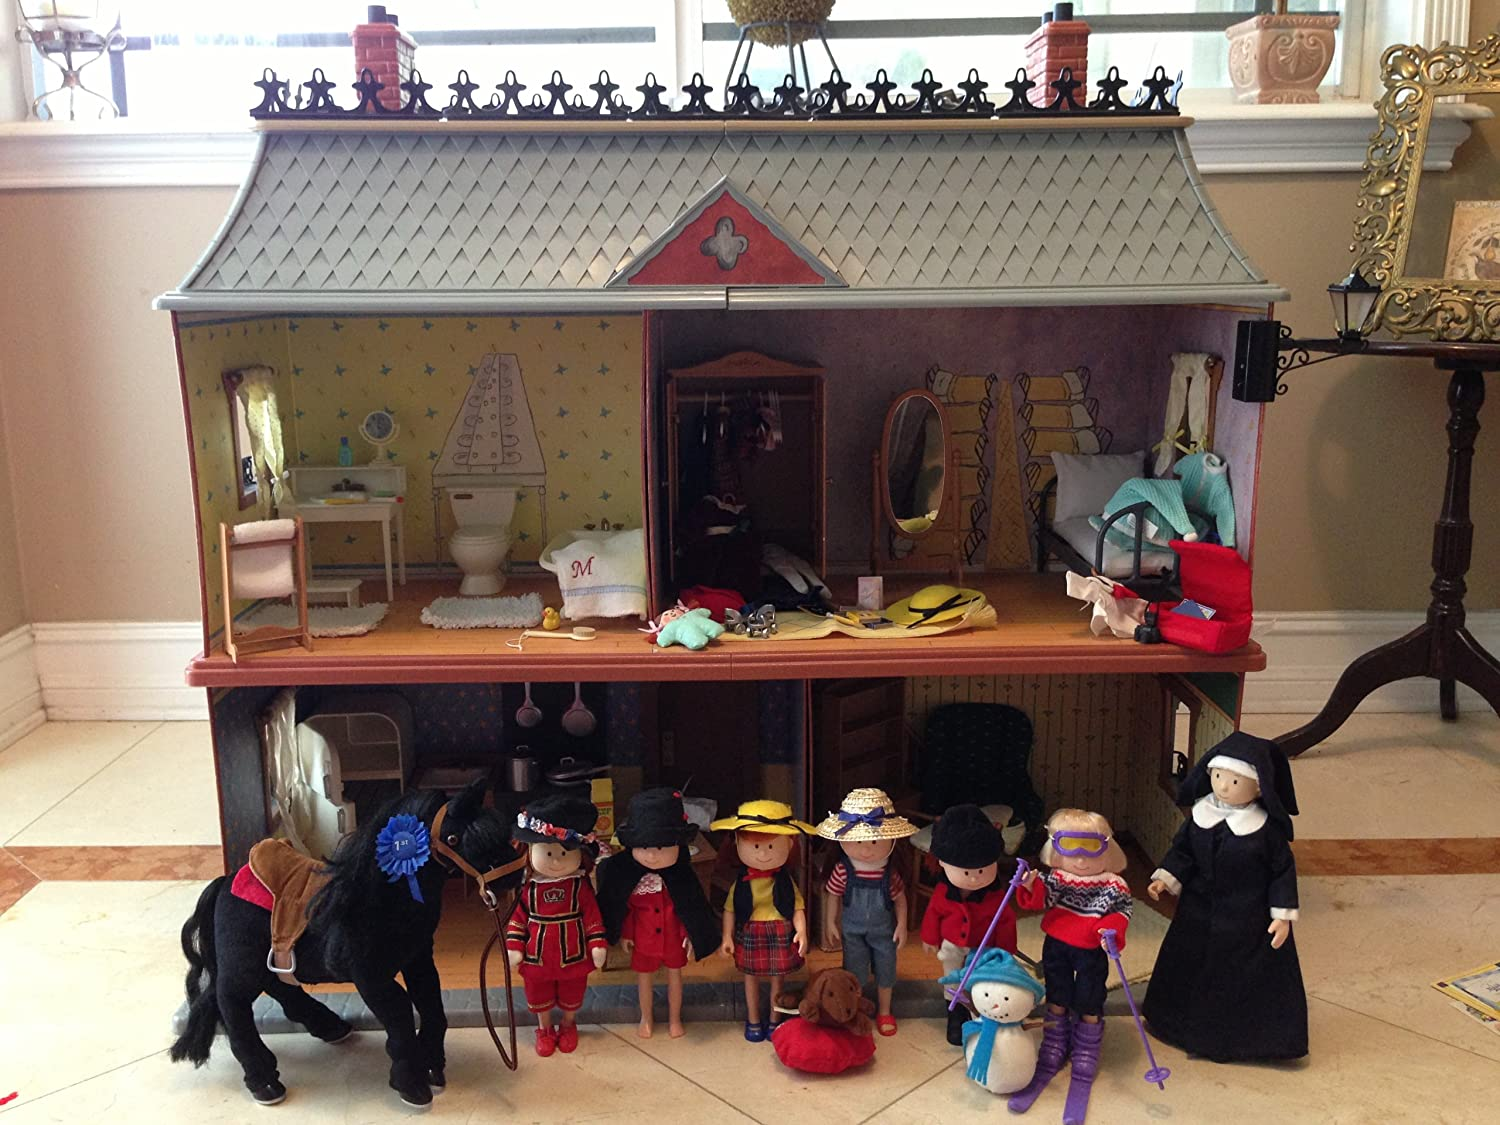 Exceptional Amazon.com: Madeline 8 Inch Doll House   Retired Old House In Paris: Toys U0026  Games